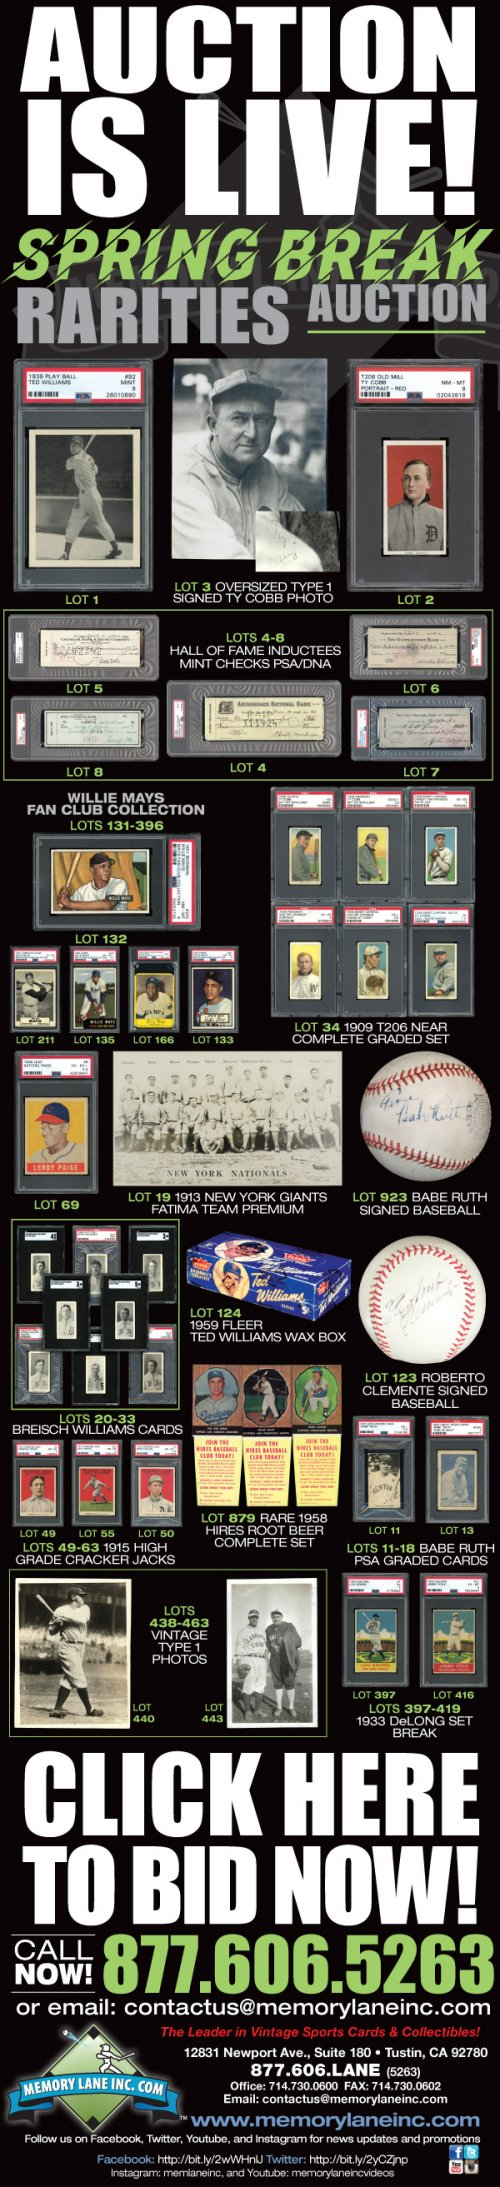 Memory Lane To Offer Worlds Best Willie Mays Card Collection In